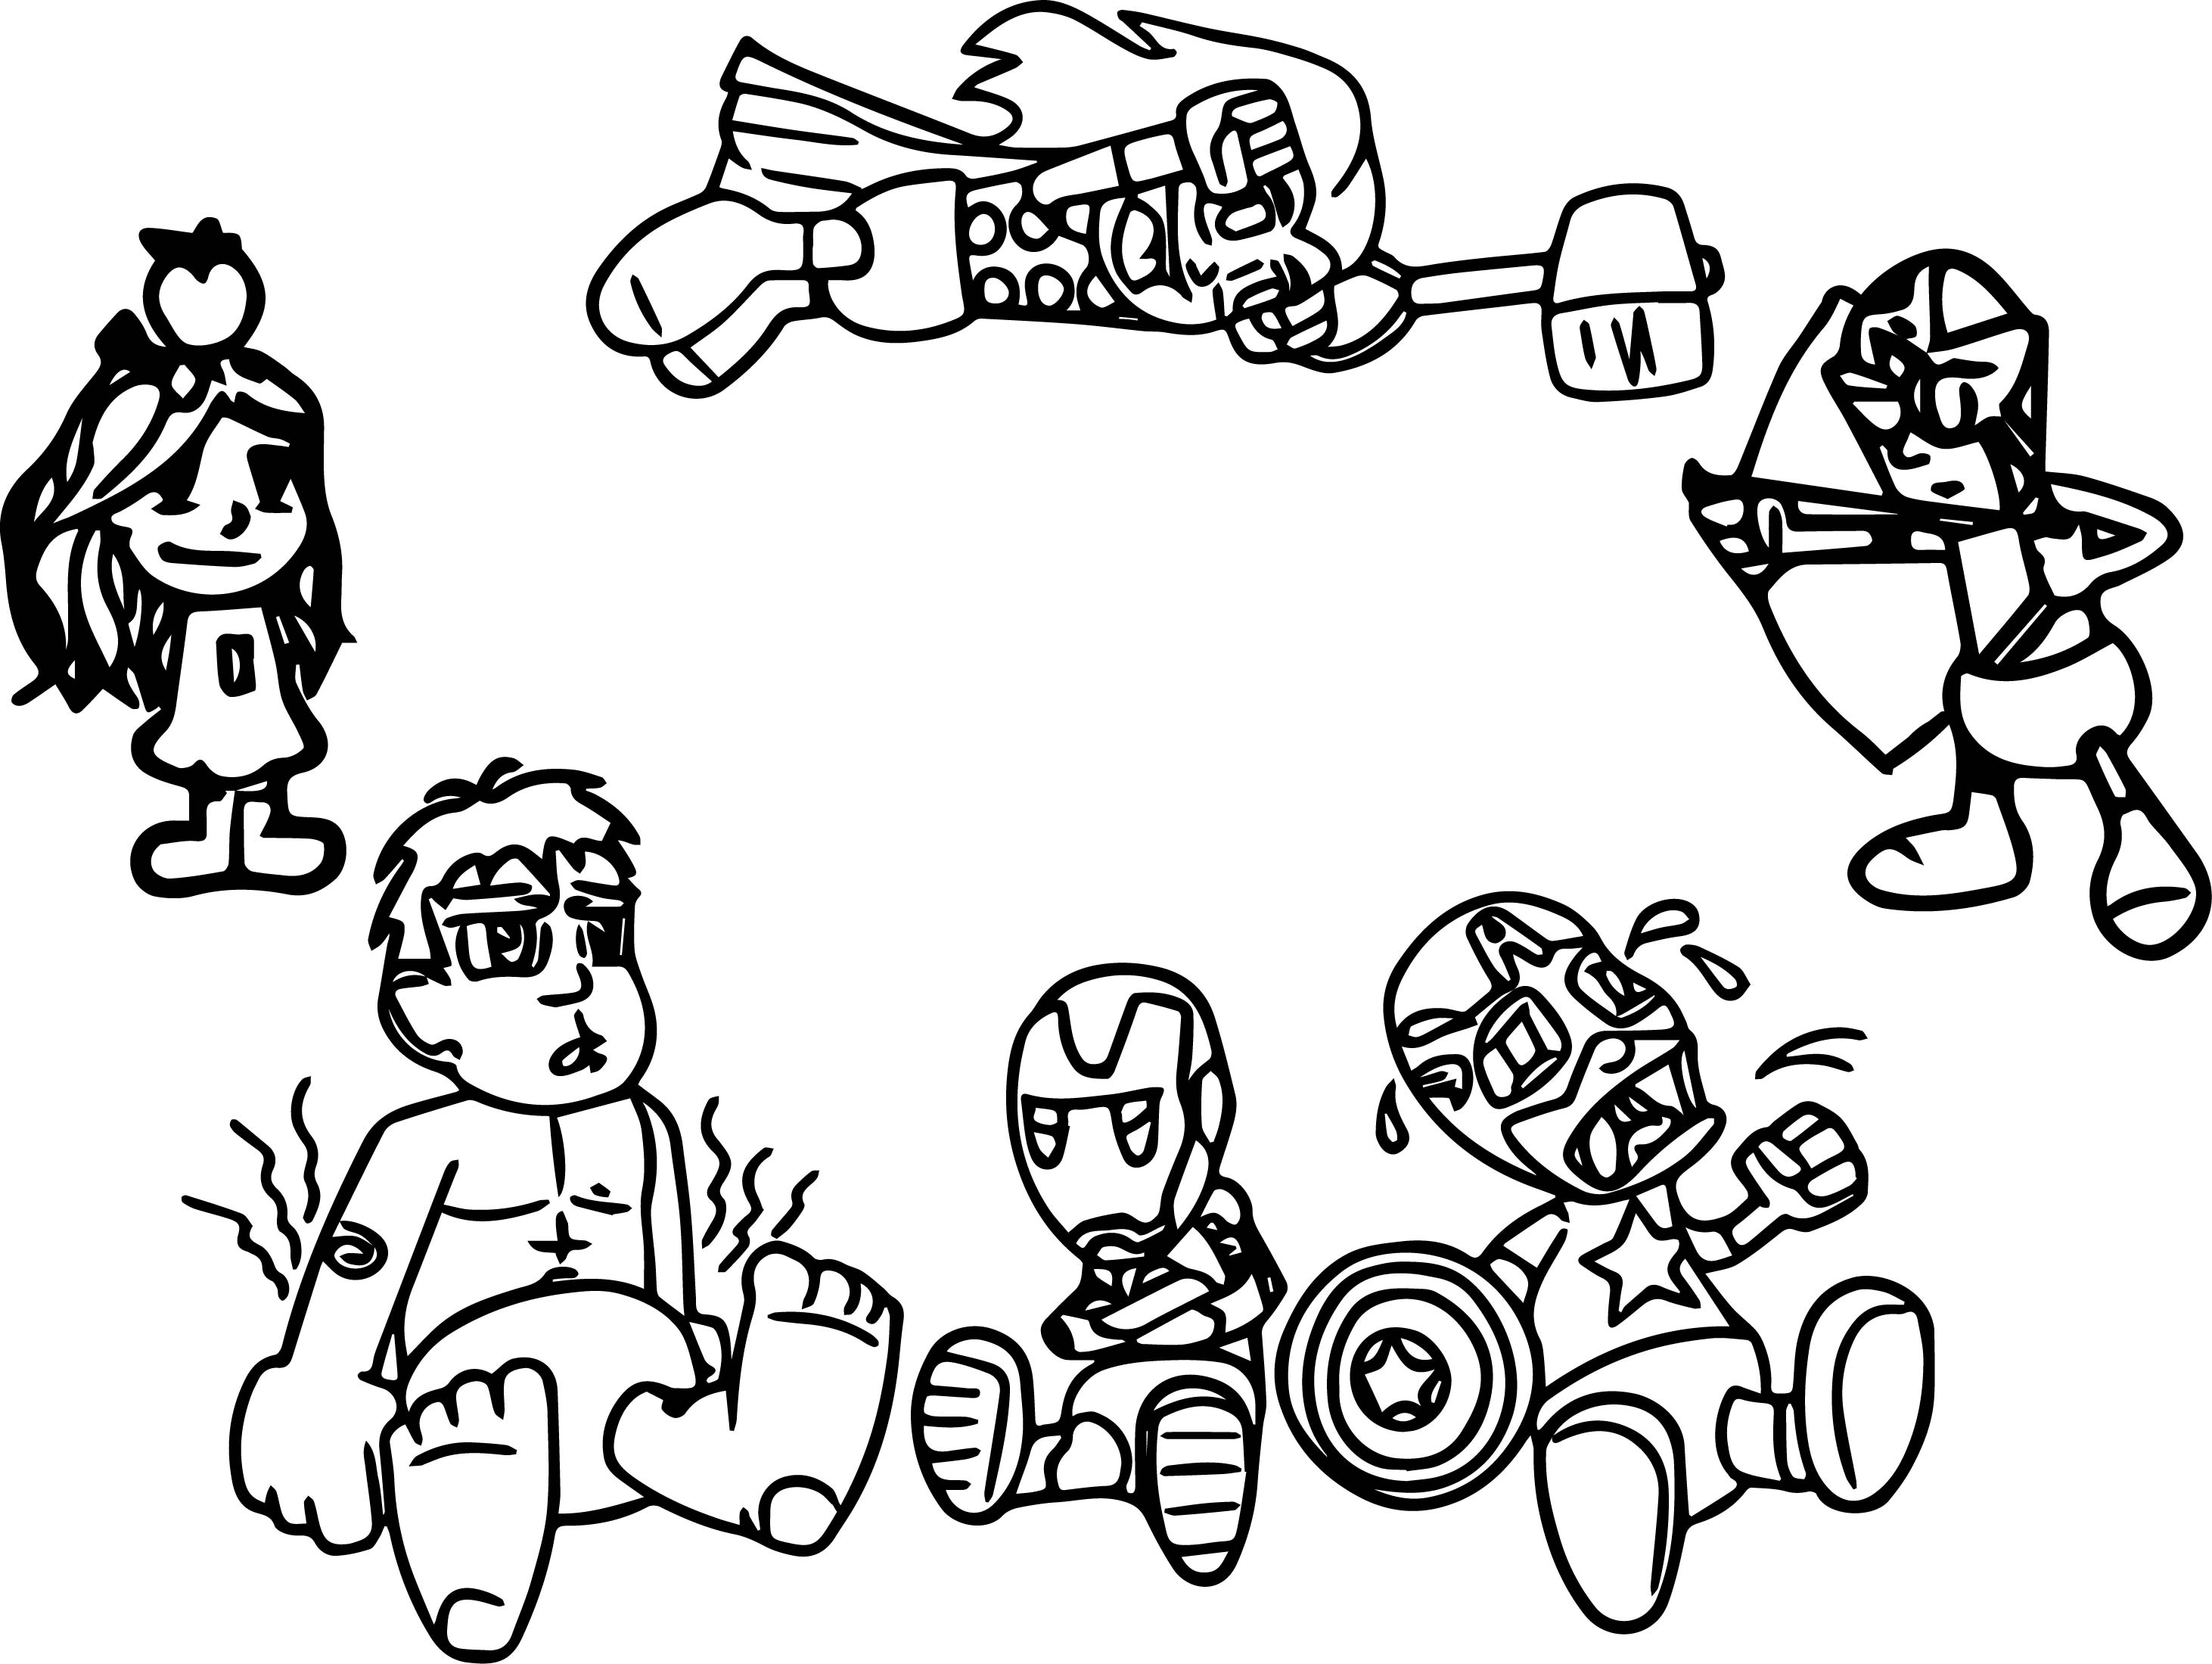 Avenger Babies Cartoon Coloring Page